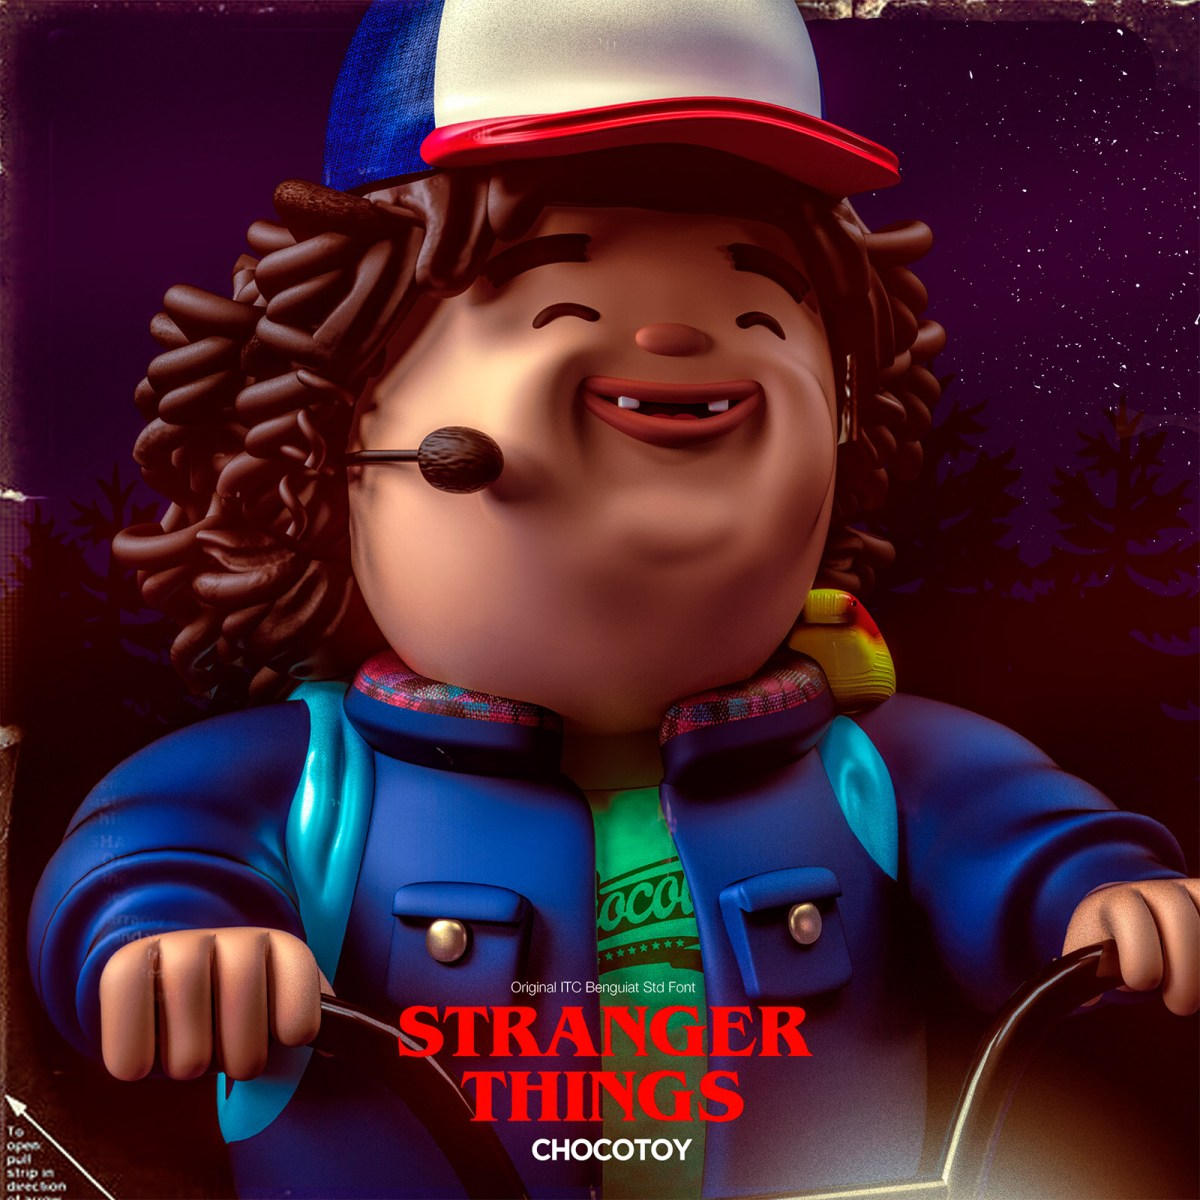 Stranger Things Chocotoys